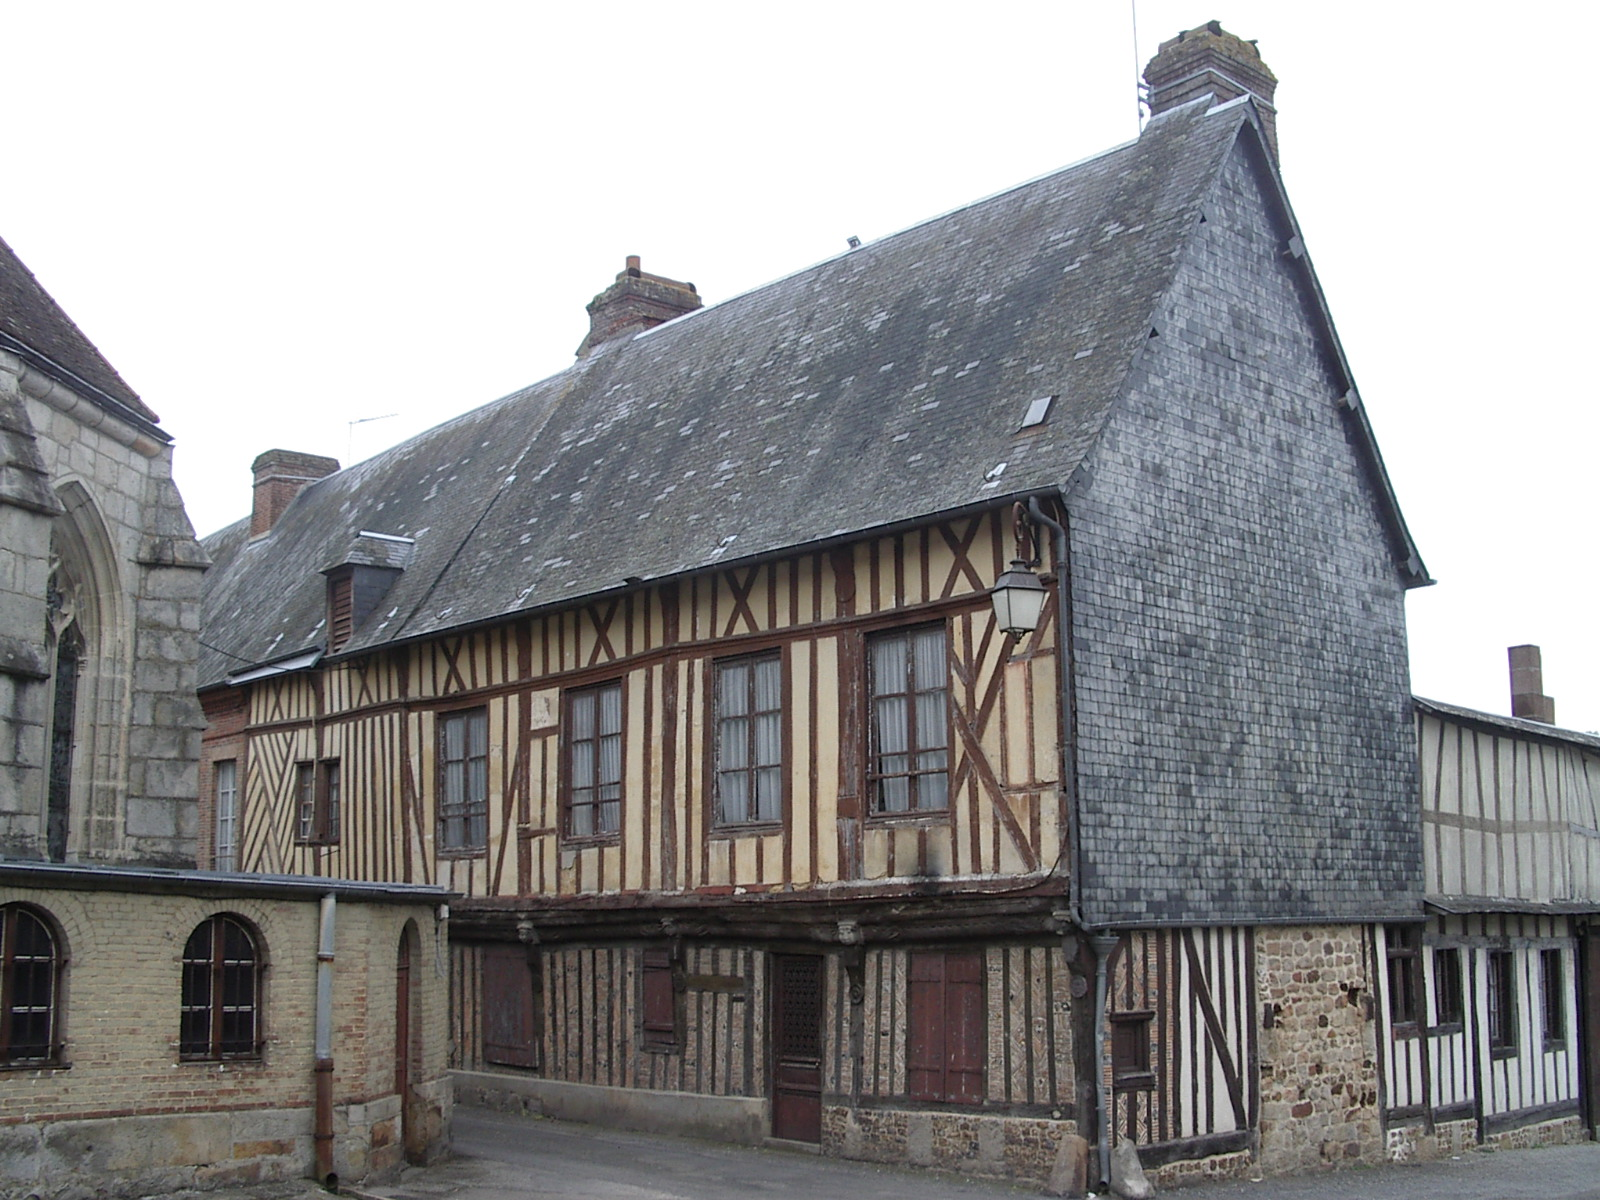 File:Broglie-Maison ancienne.jpg - Wikimedia Commons